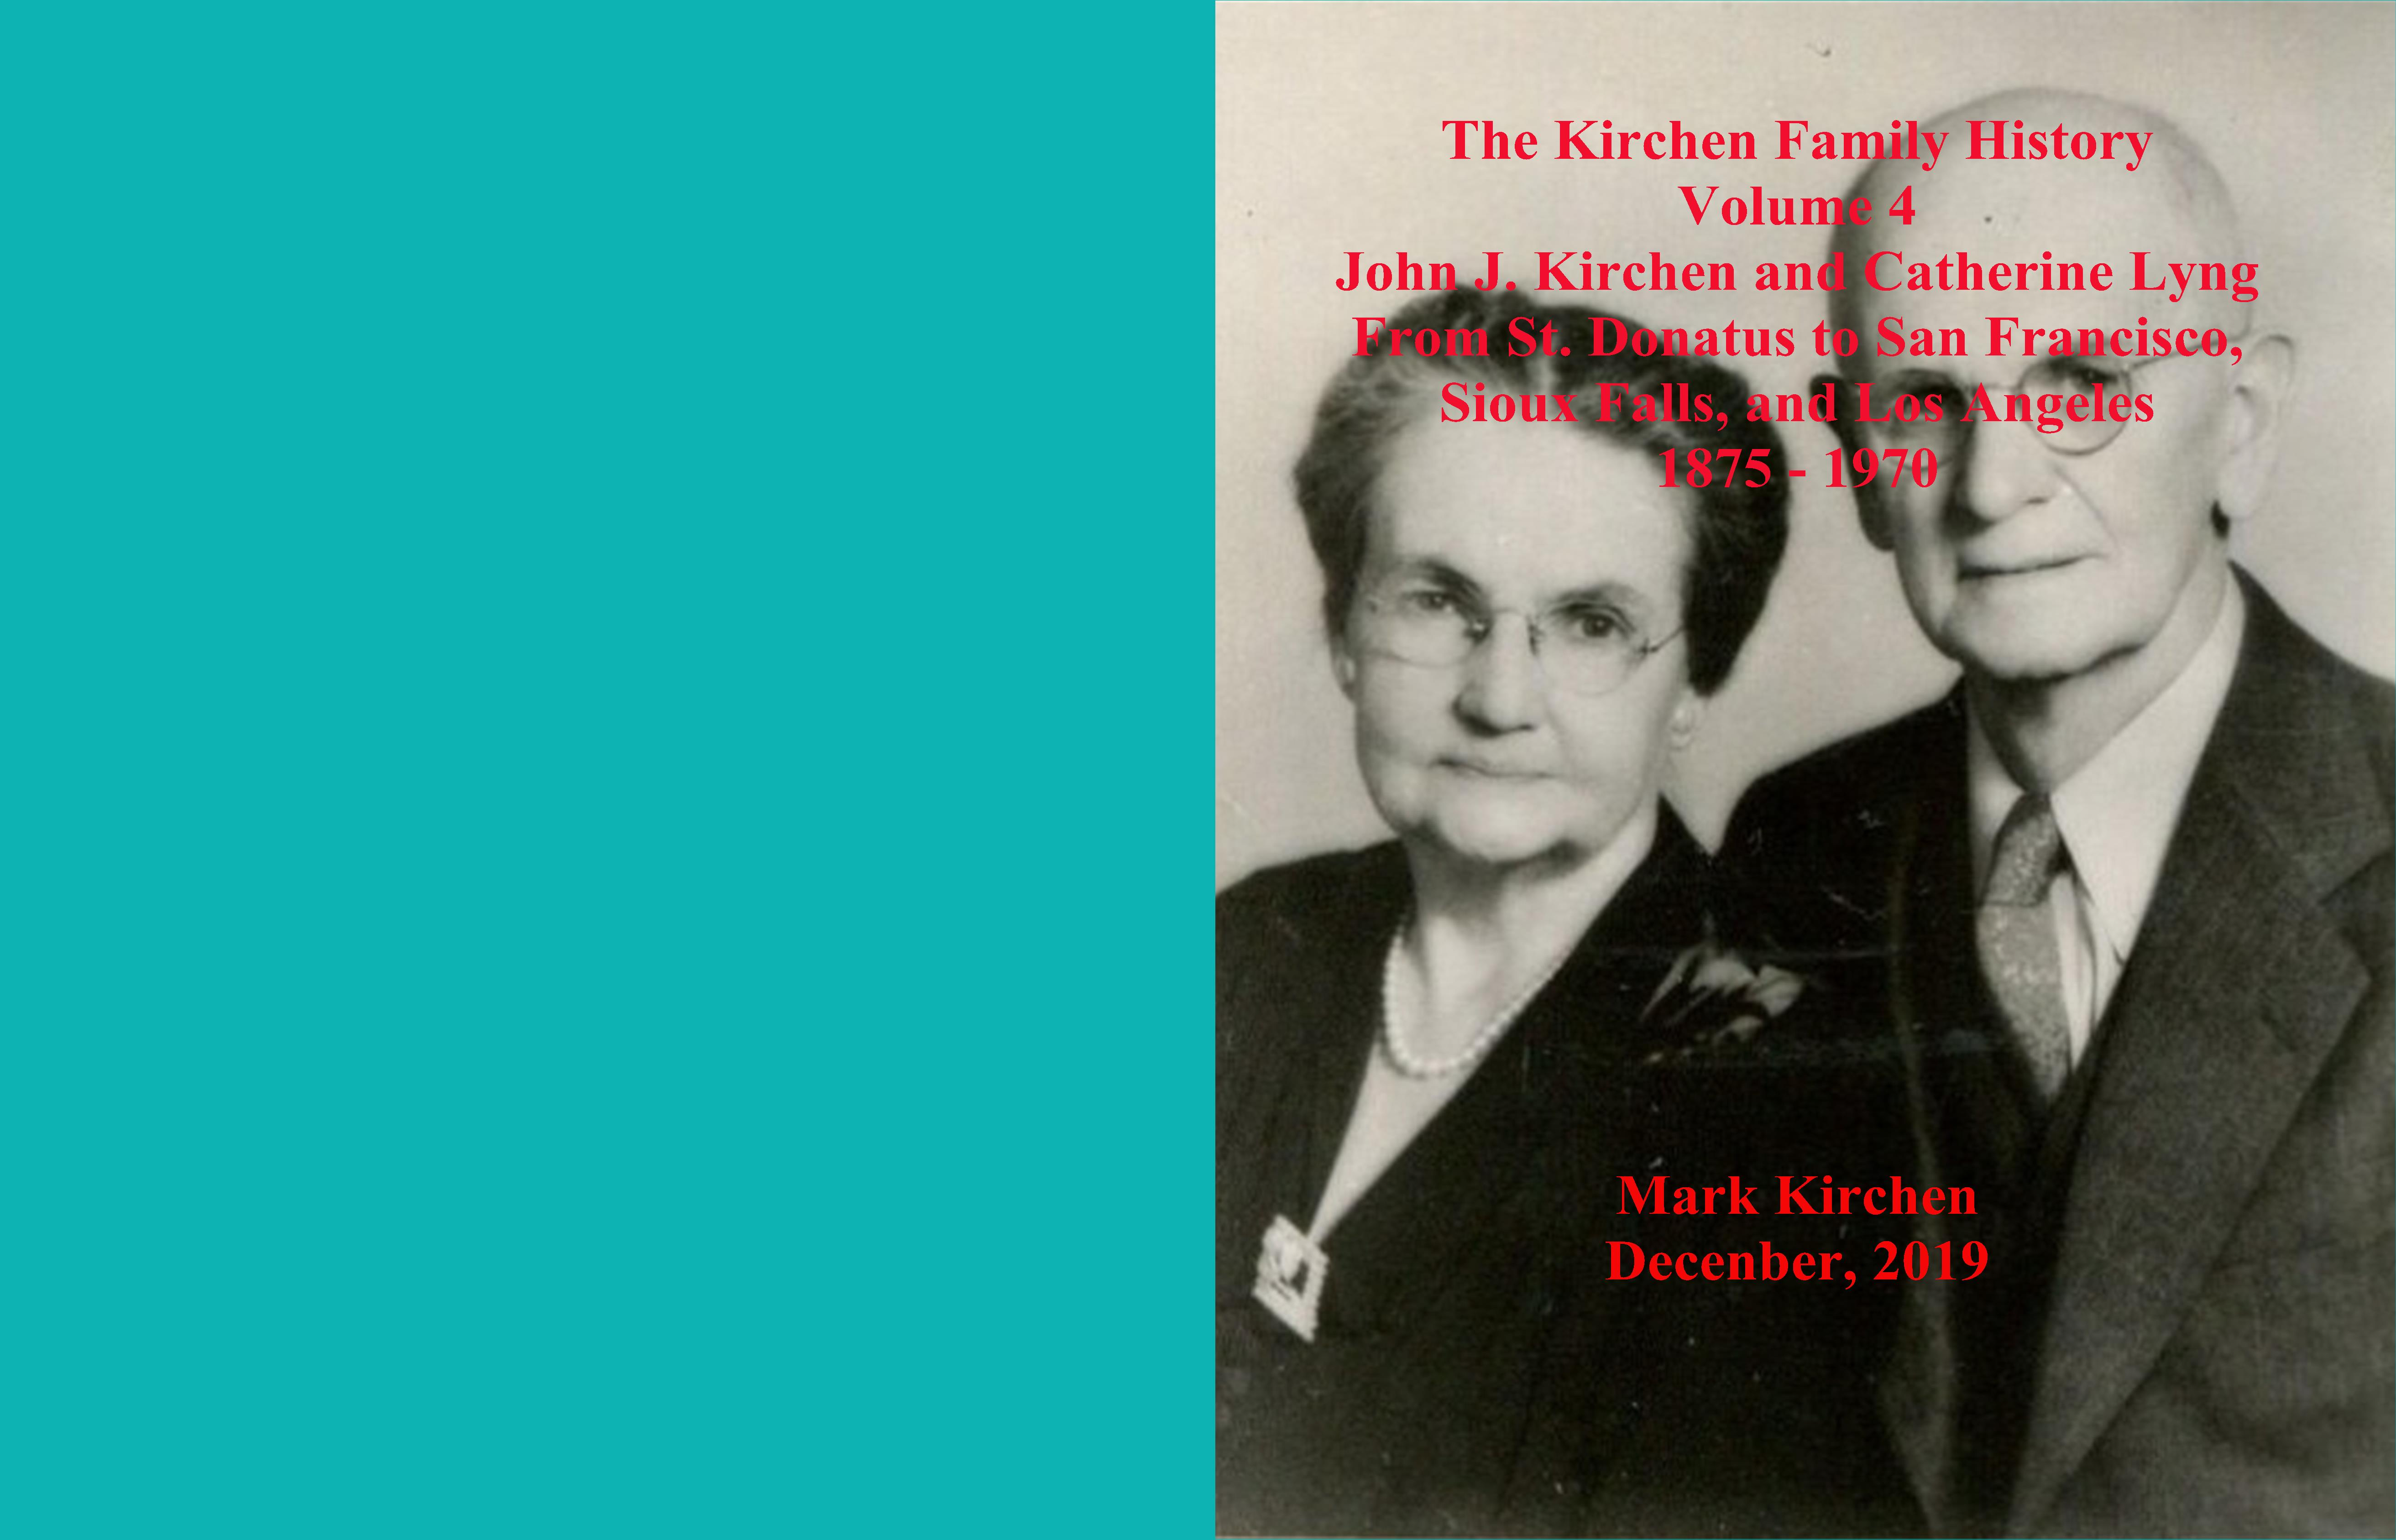 The Kirchen Family History Volume 4 John J. Kirchen and Catherine Lyng From St. Donatus to San Francisco, Sioux Falls, and Los Angeles 1875 - 1970 cover image